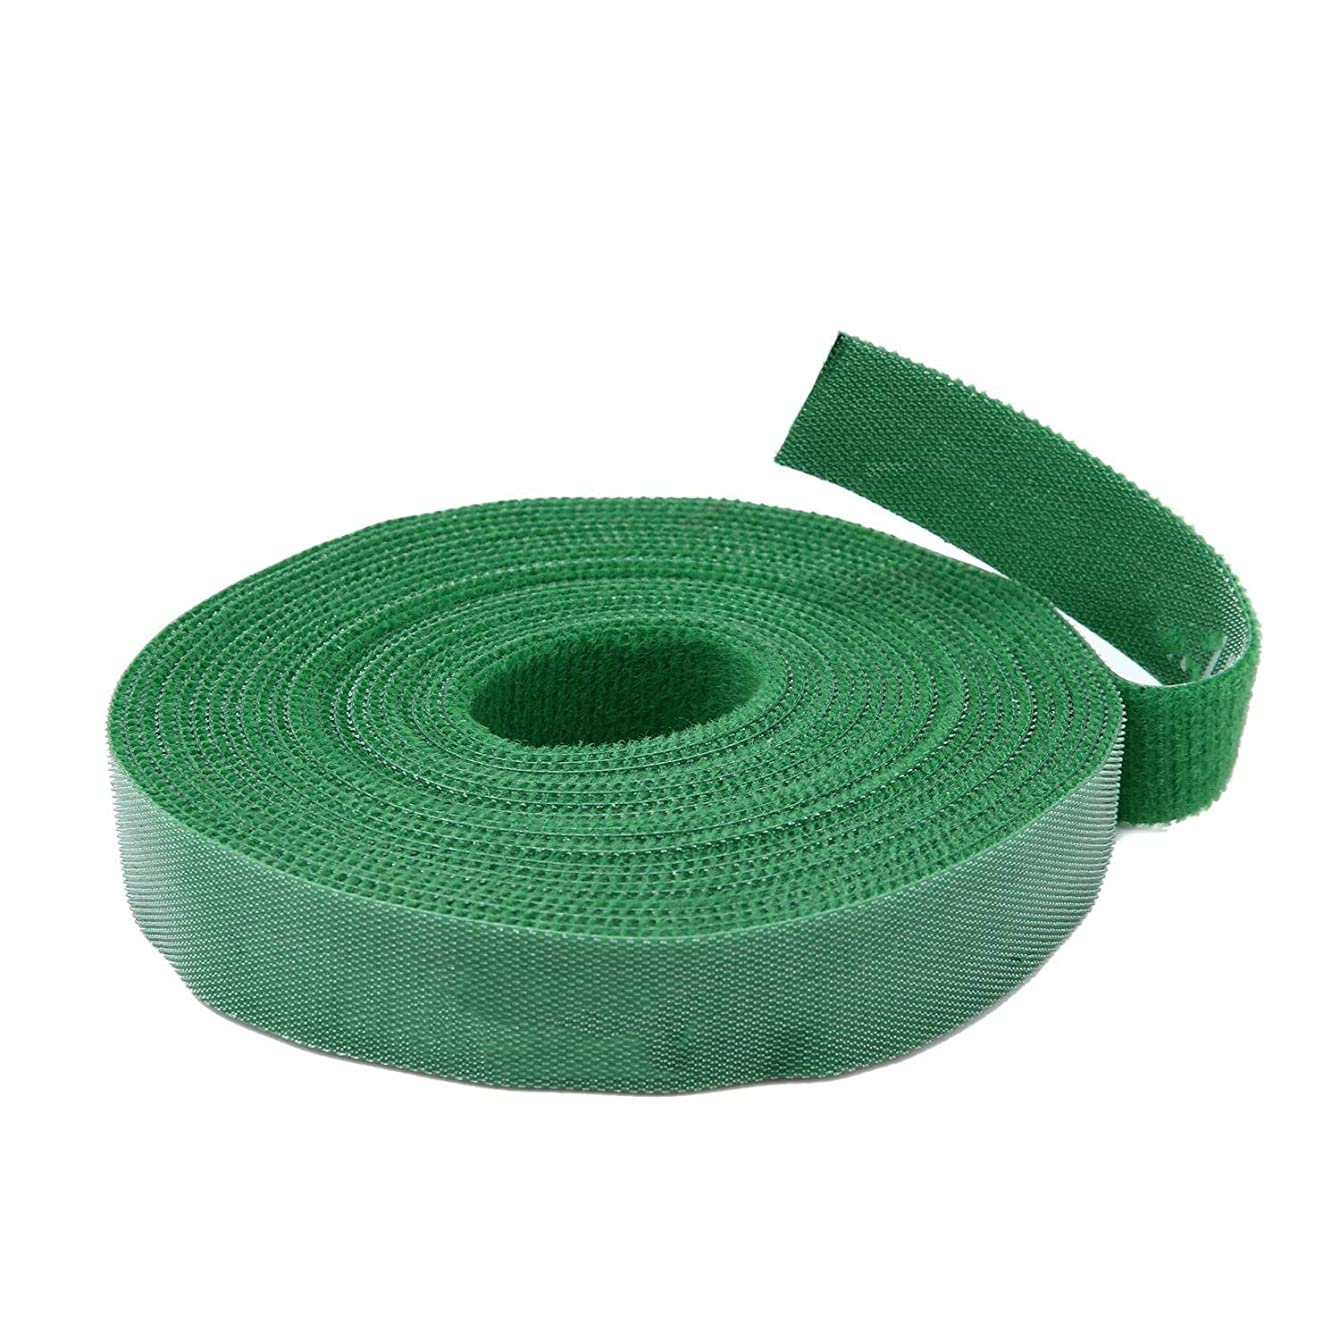 1/2 inch Hook Loop Cable Tie Fasten One Wrap Cord Tape Double Side Nylon Power Cord Management Wire Organizer Straps Reusable Self Gripping 20 Feet 1 Roll (Olive)